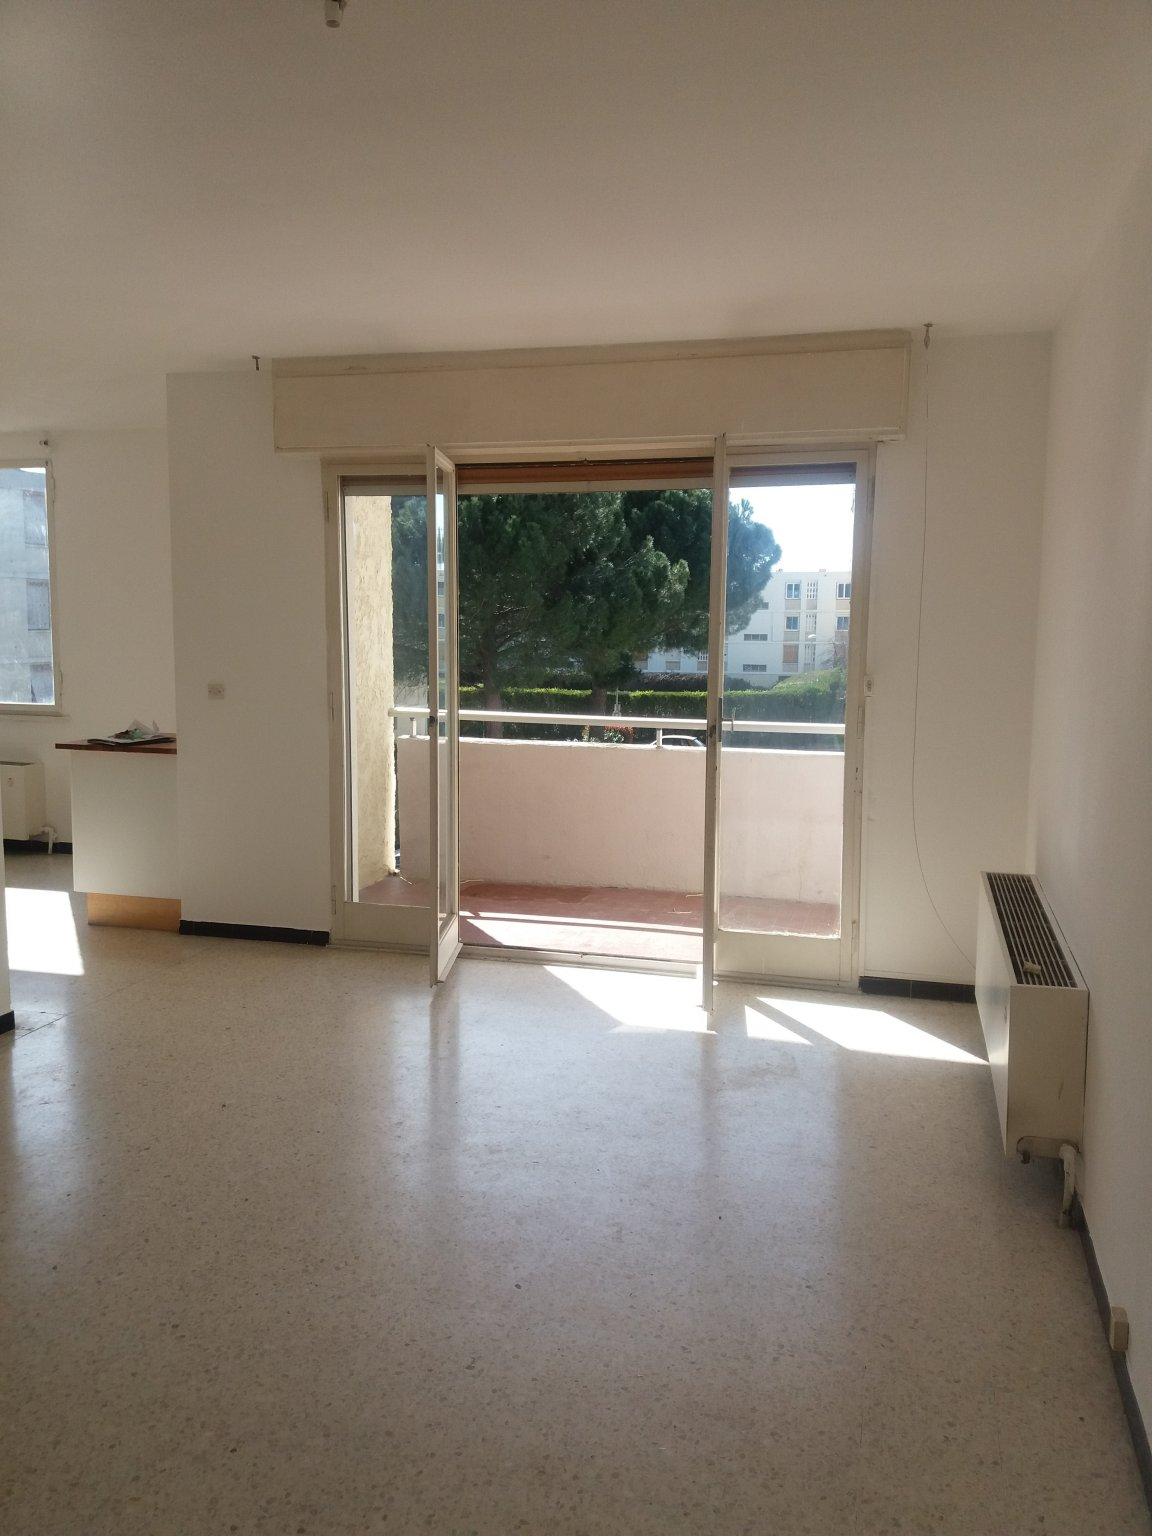 Location lunel Appartement  42 m2